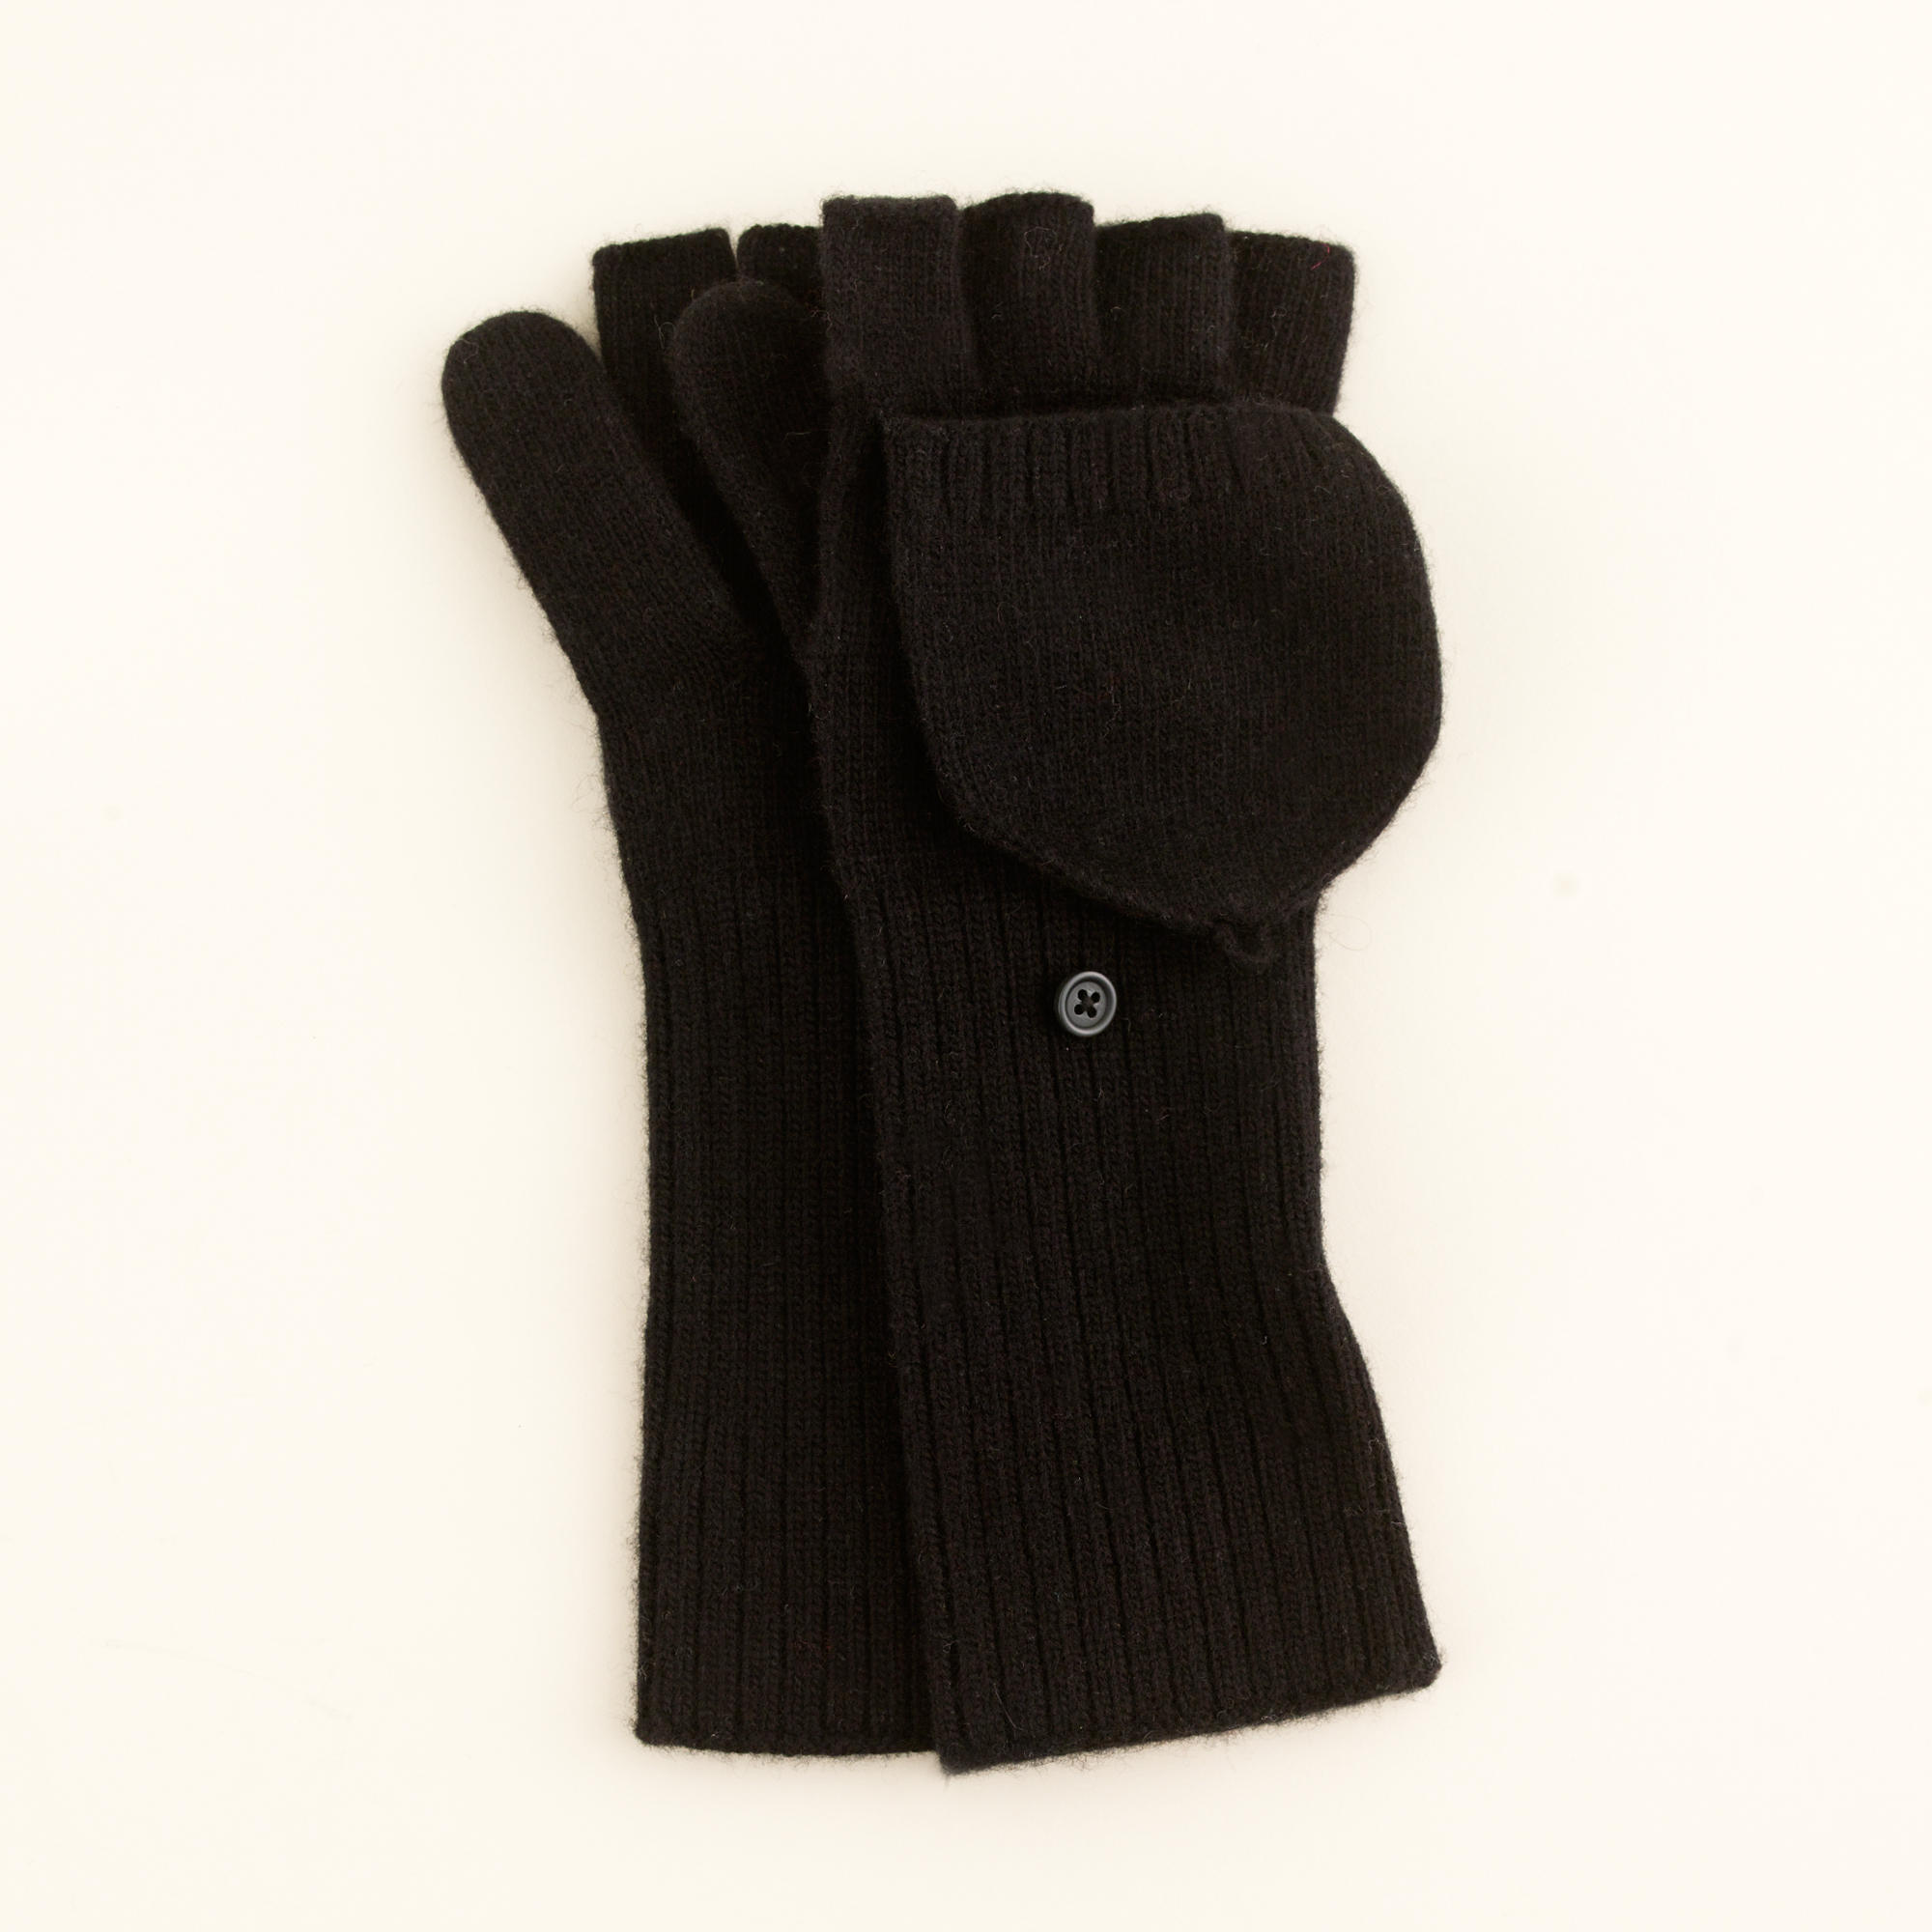 Mens gloves with mitten flap - Mens Gloves With Mitten Flap 51